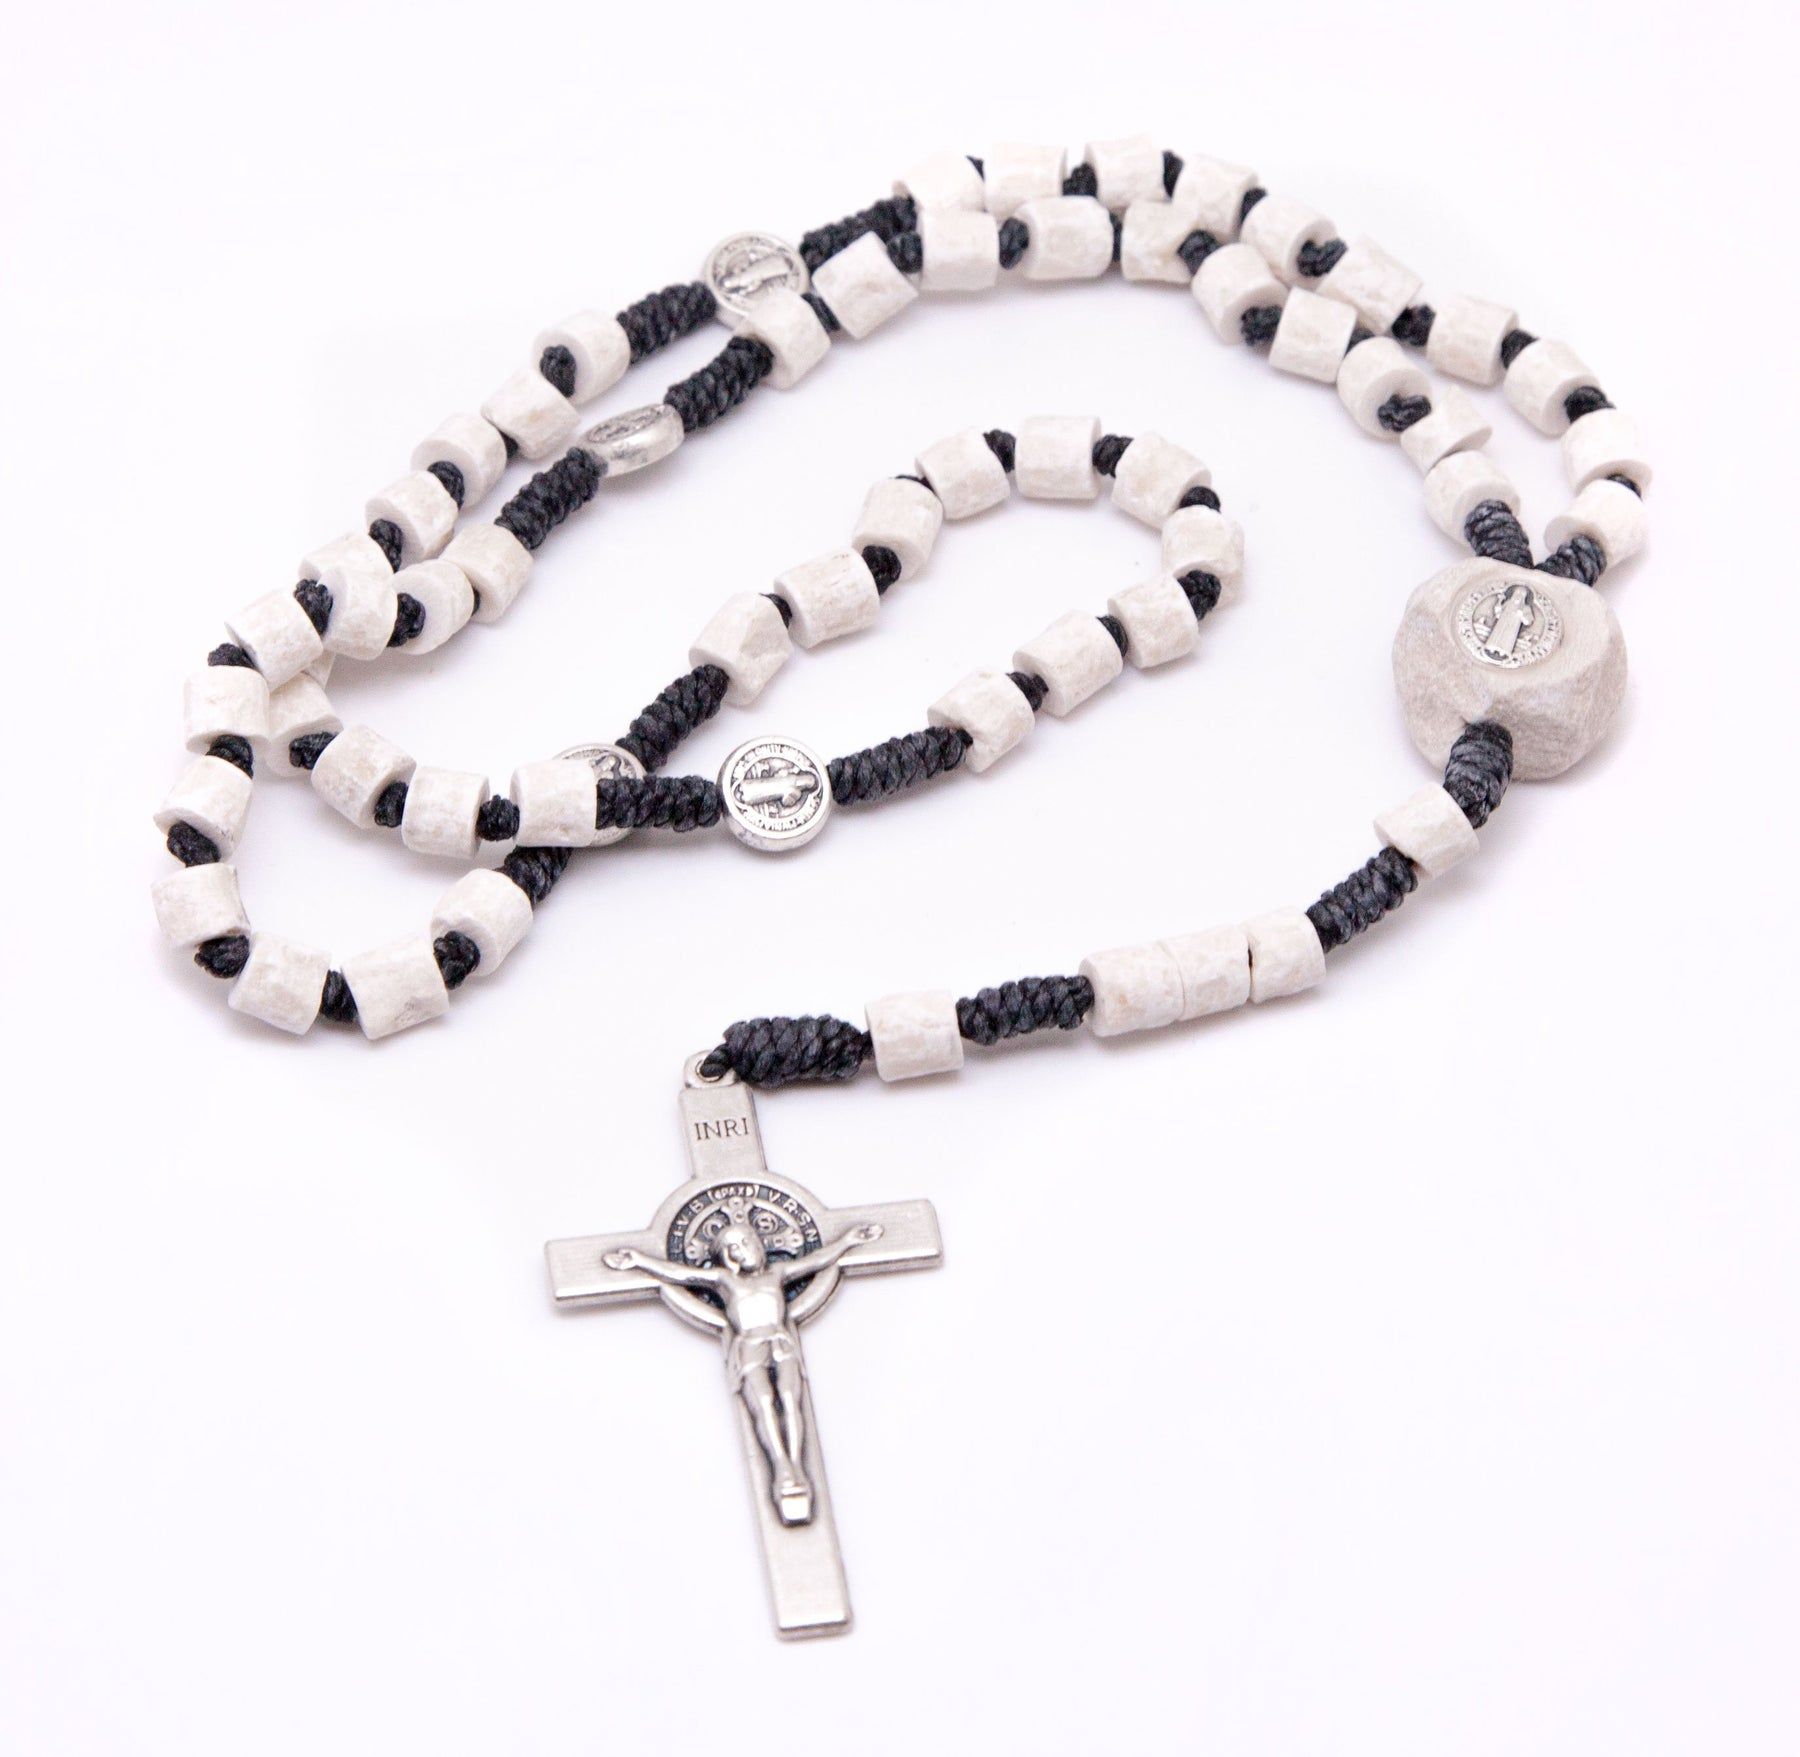 Medjugorje St. Benedict Stone Rosary - Black Cord